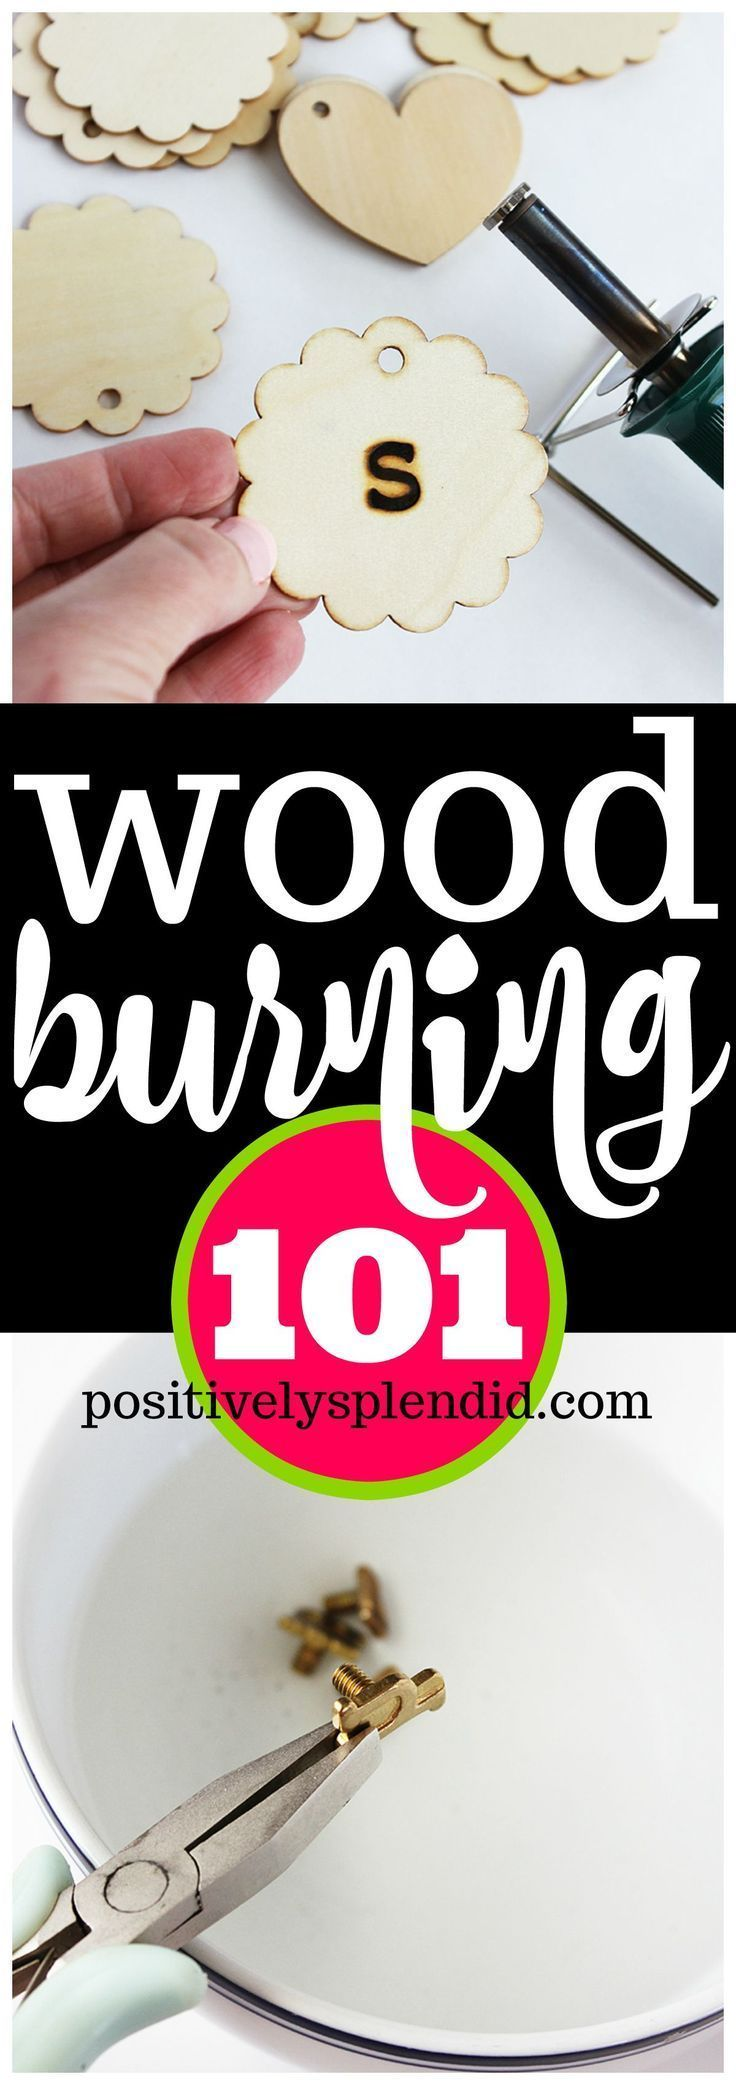 10 Wood Burning Tips for Beautiful Wood Burning Projects